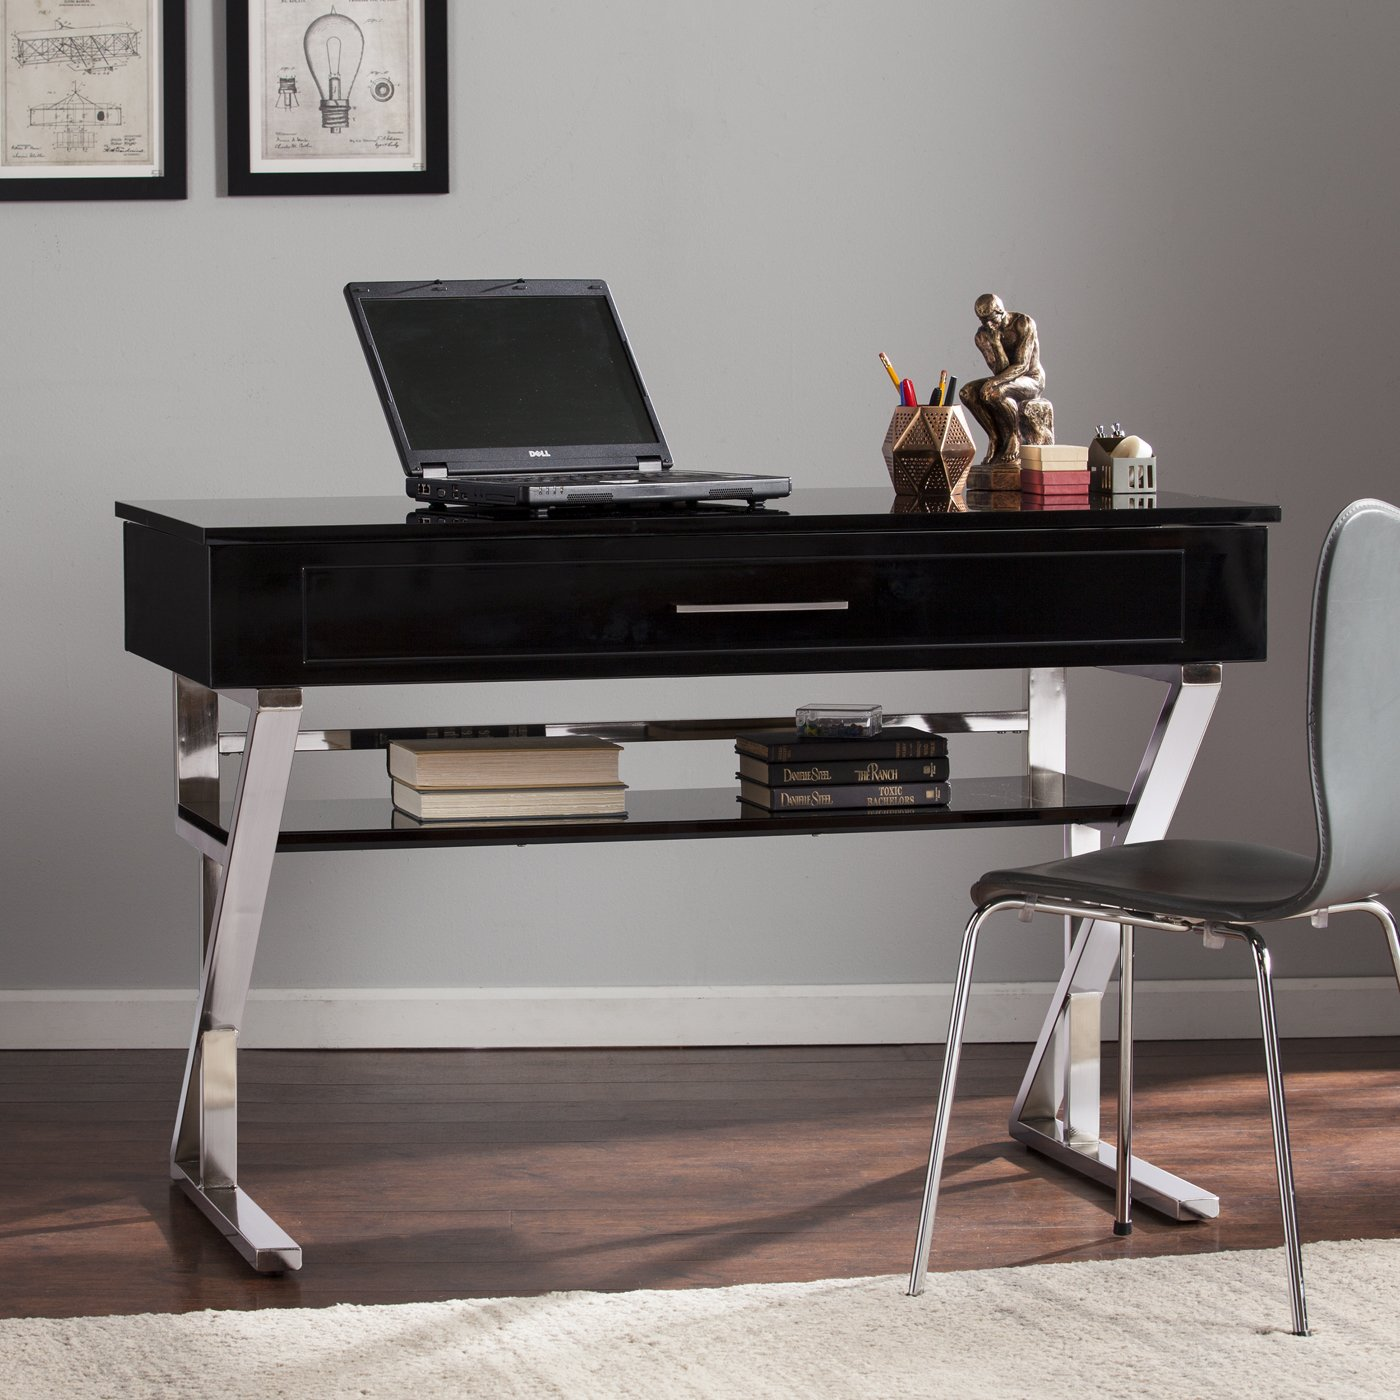 Image of: Adjustable Height Computer Desk Modern